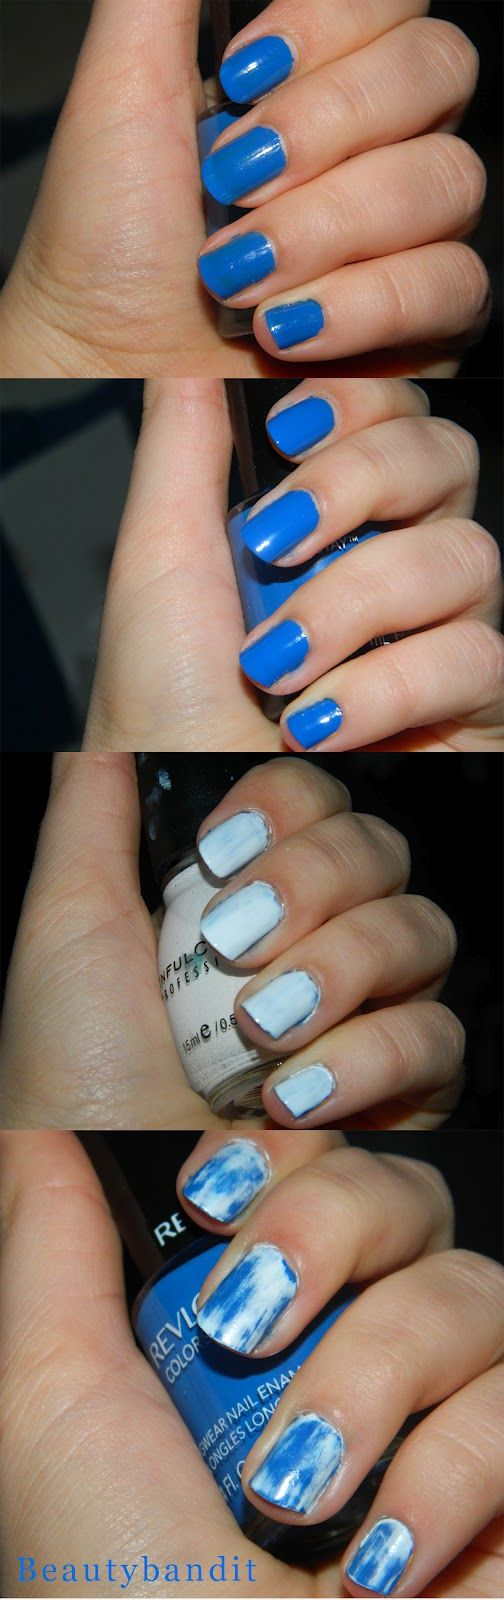 1) Paint your nails with a blue color. 2) Apply 2nd coat of blue. 3) Apply a white color on top. 4) Dip a Q-tip in nail polish remover & gently swipe away the white. Be careful not to get to your bare nail. 5) Top coat!: Polish Removal, Nail Polish, Without Colors, Opi Nails, Nails Polish, Blue Colors, White Colors, Gentle Swipe, Only Nails